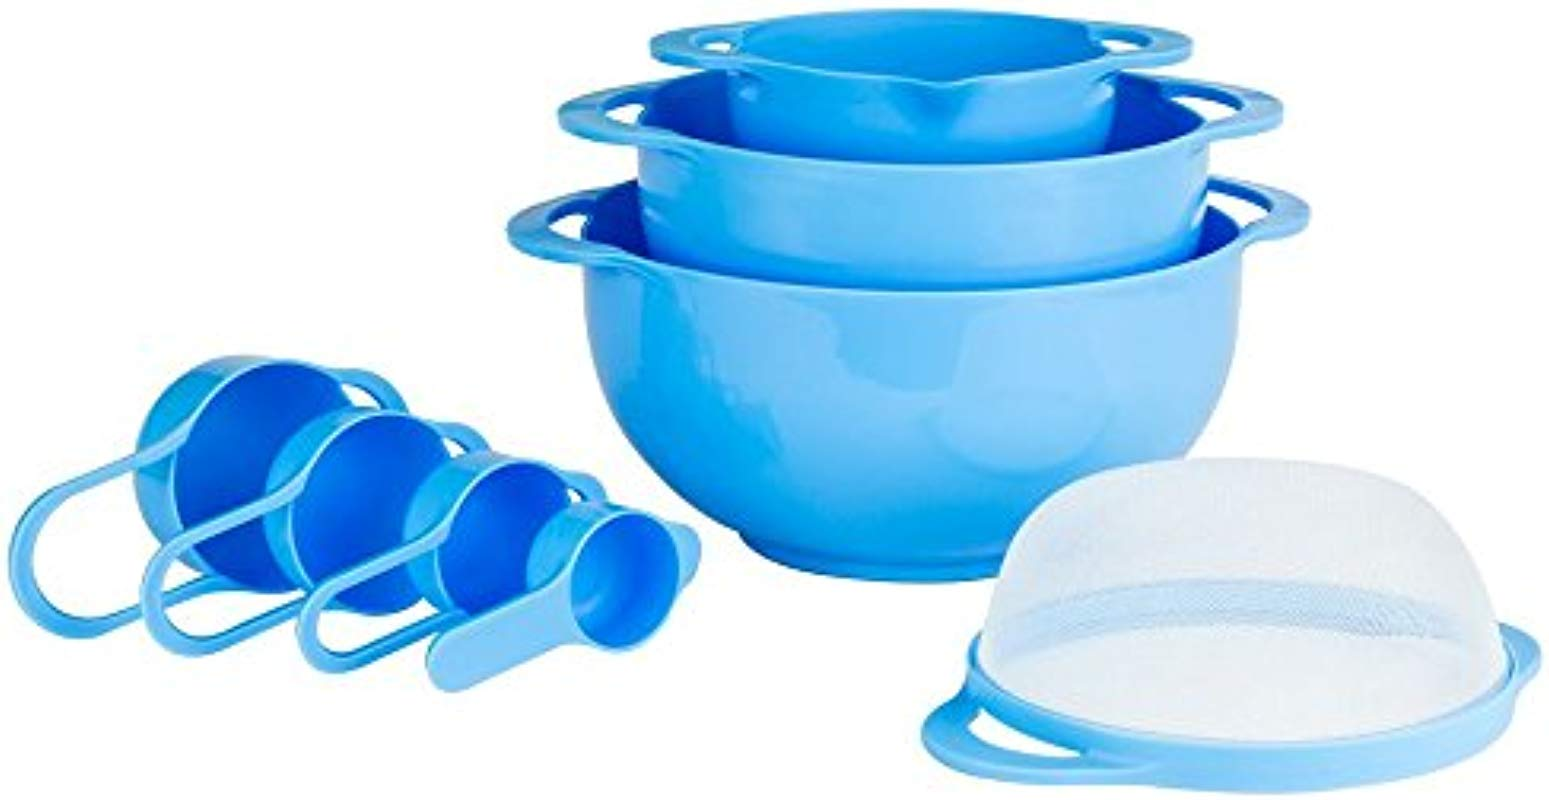 Set Of 8 Compact Nesting Mixing Bowl Set Measuring Tools Sieve Colander Food Prep Plastic Dishwasher Safe Non Slip 8 Piece By Intriom Blue